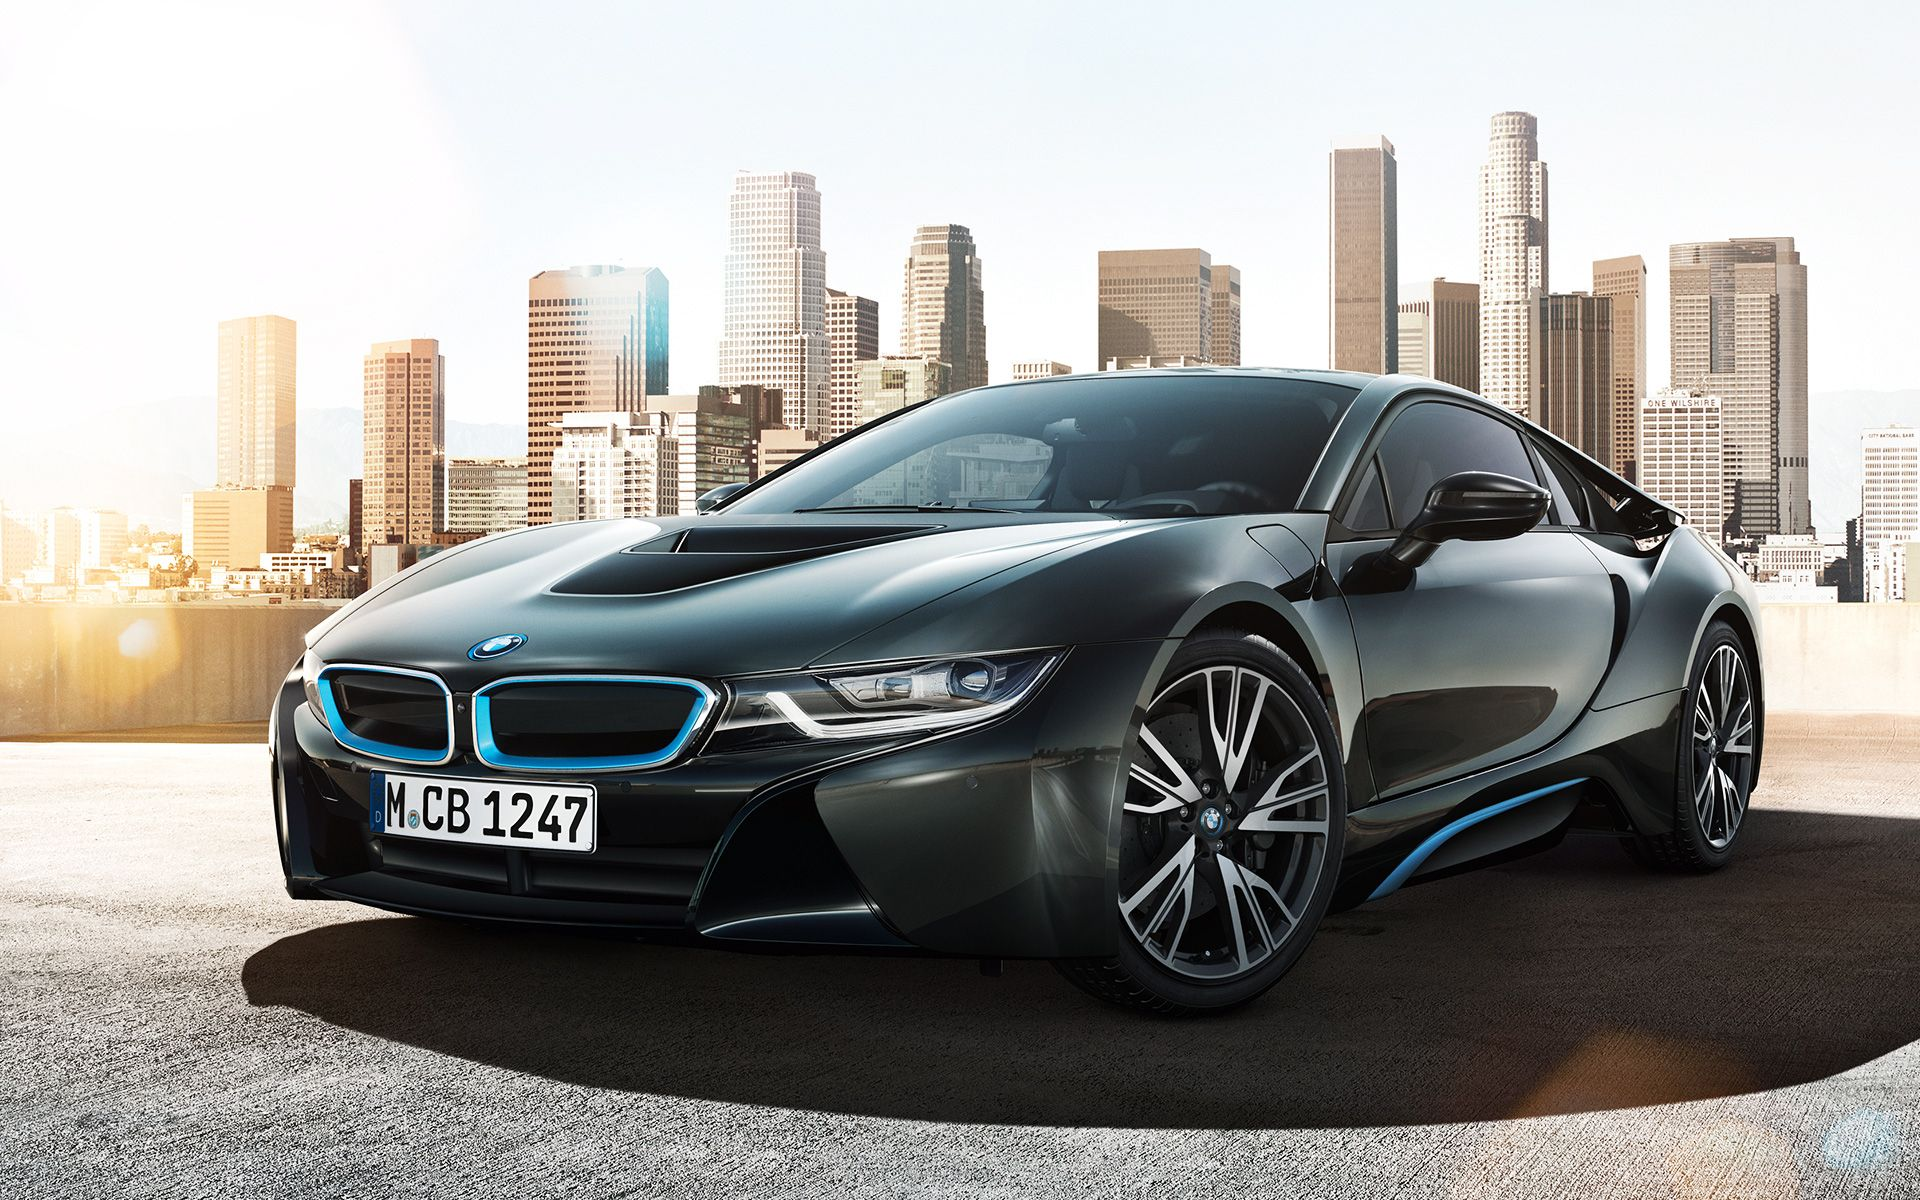 Bmw I Wins International Engine Of The Year Award Third Time In A Row Bmw I8 Bmw Bmw I